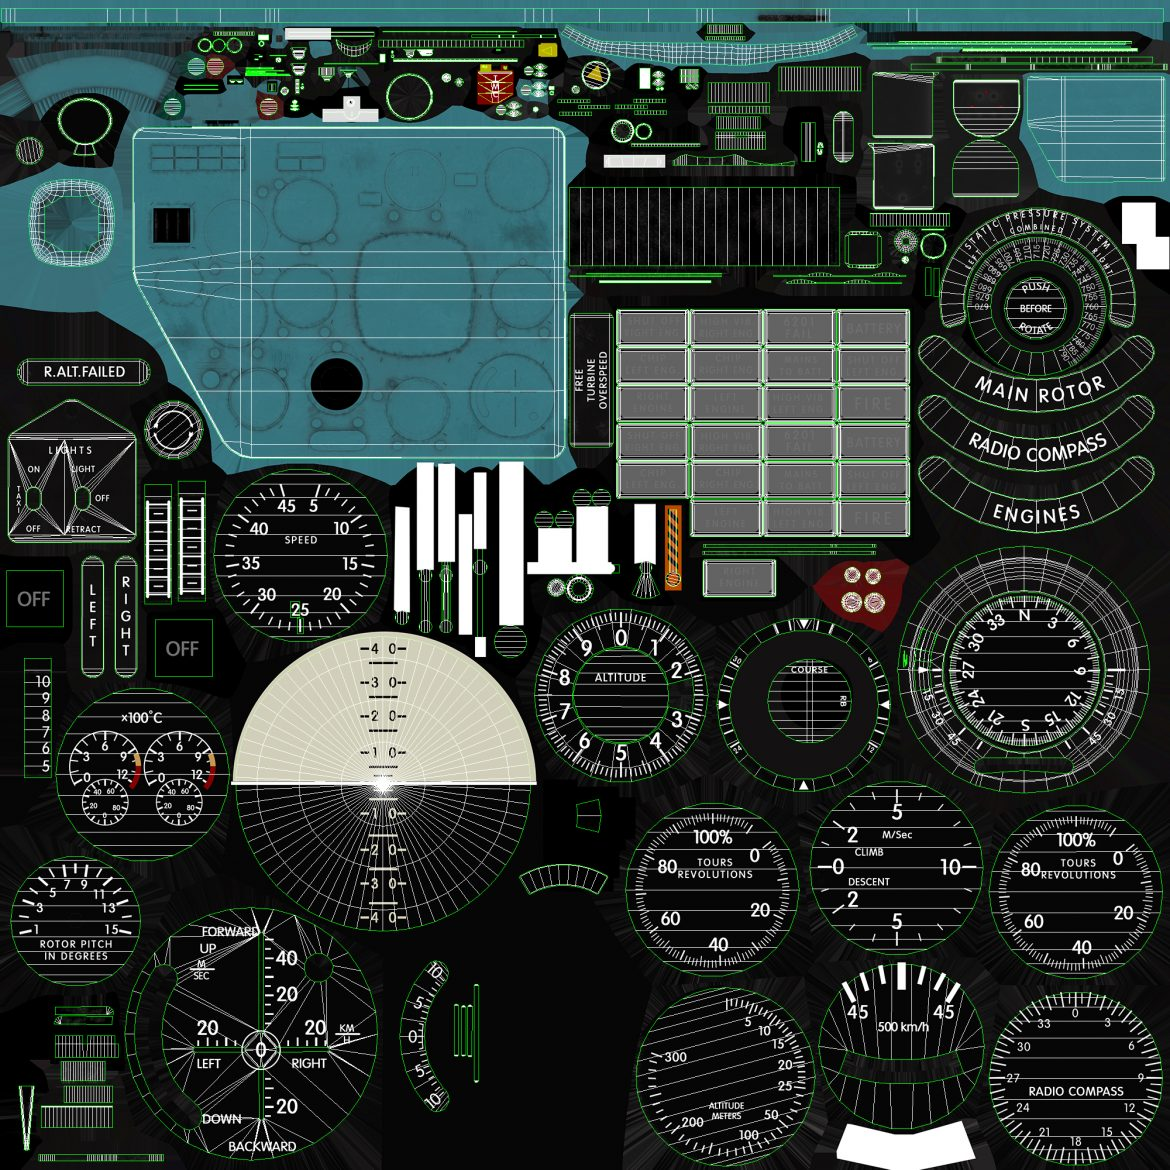 mi-8mt mi-17mt panel boards english 3d model 3ds max fbx obj 301984